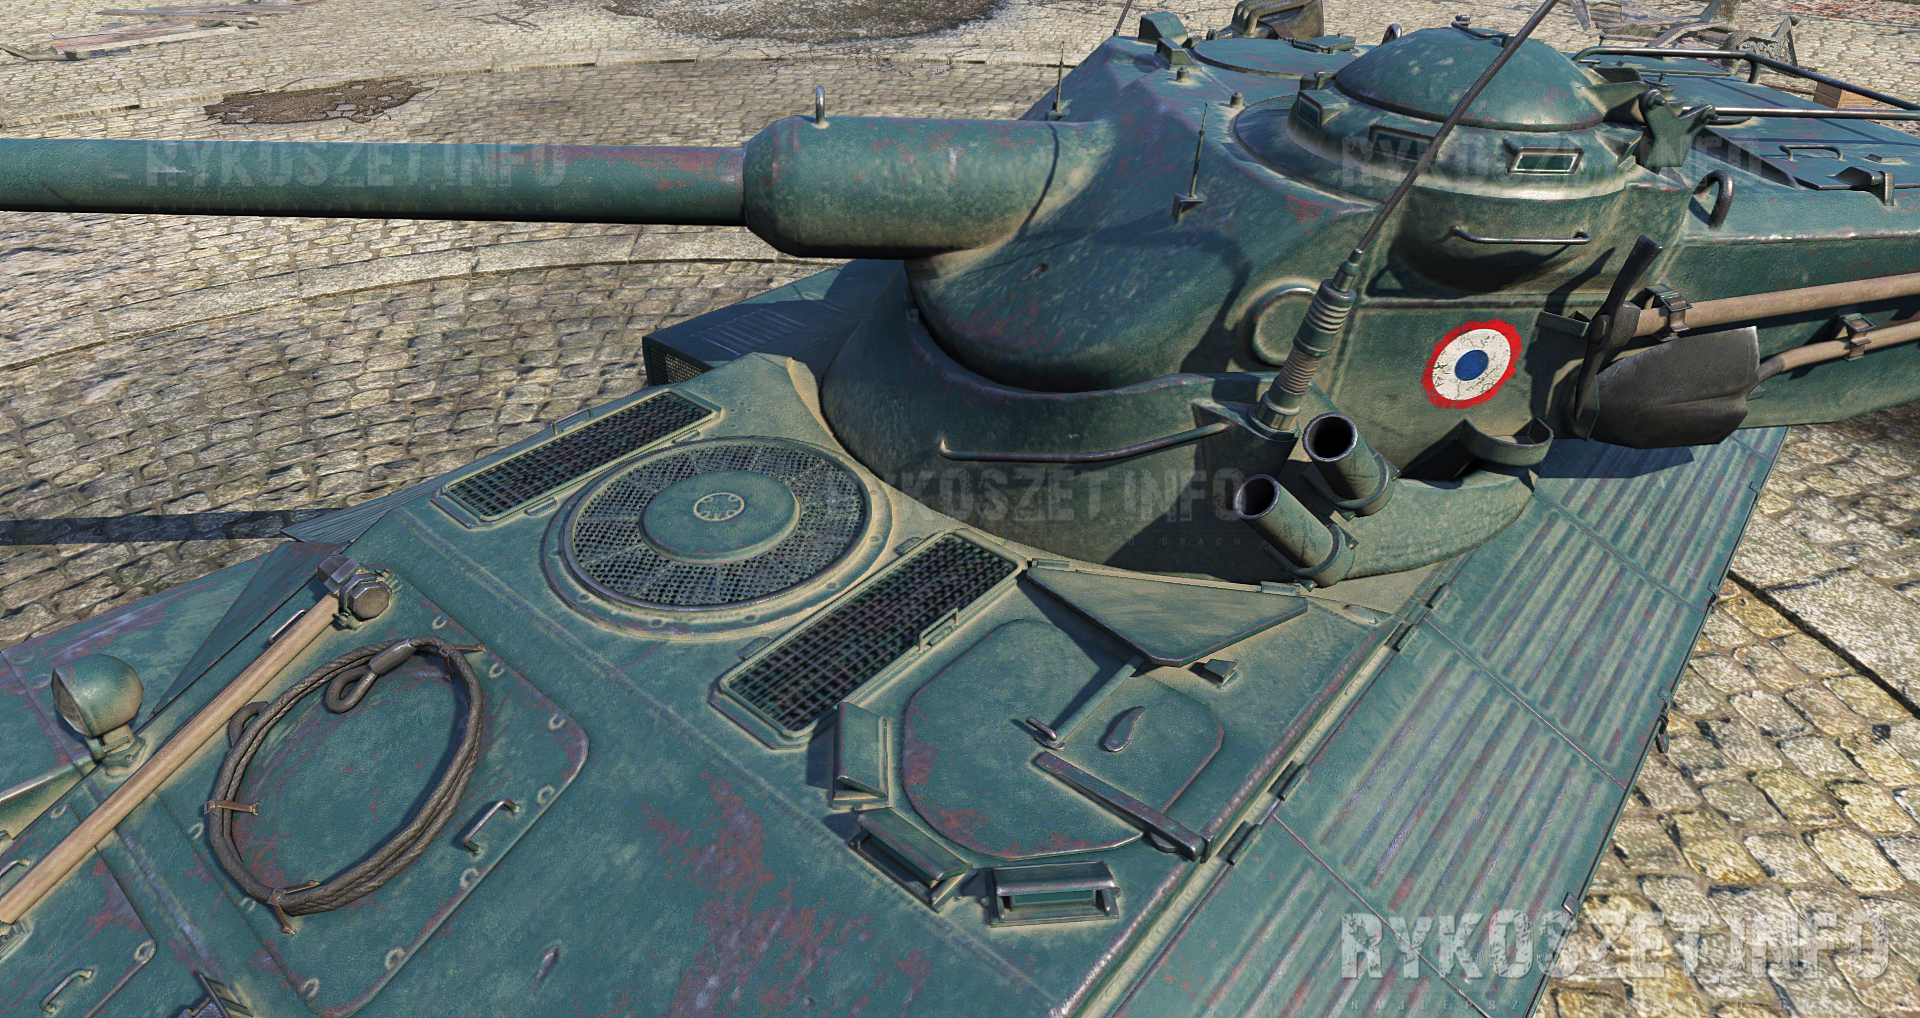 AMX 13 75 MatchMaking - Light Tanks - World of Tanks official forum